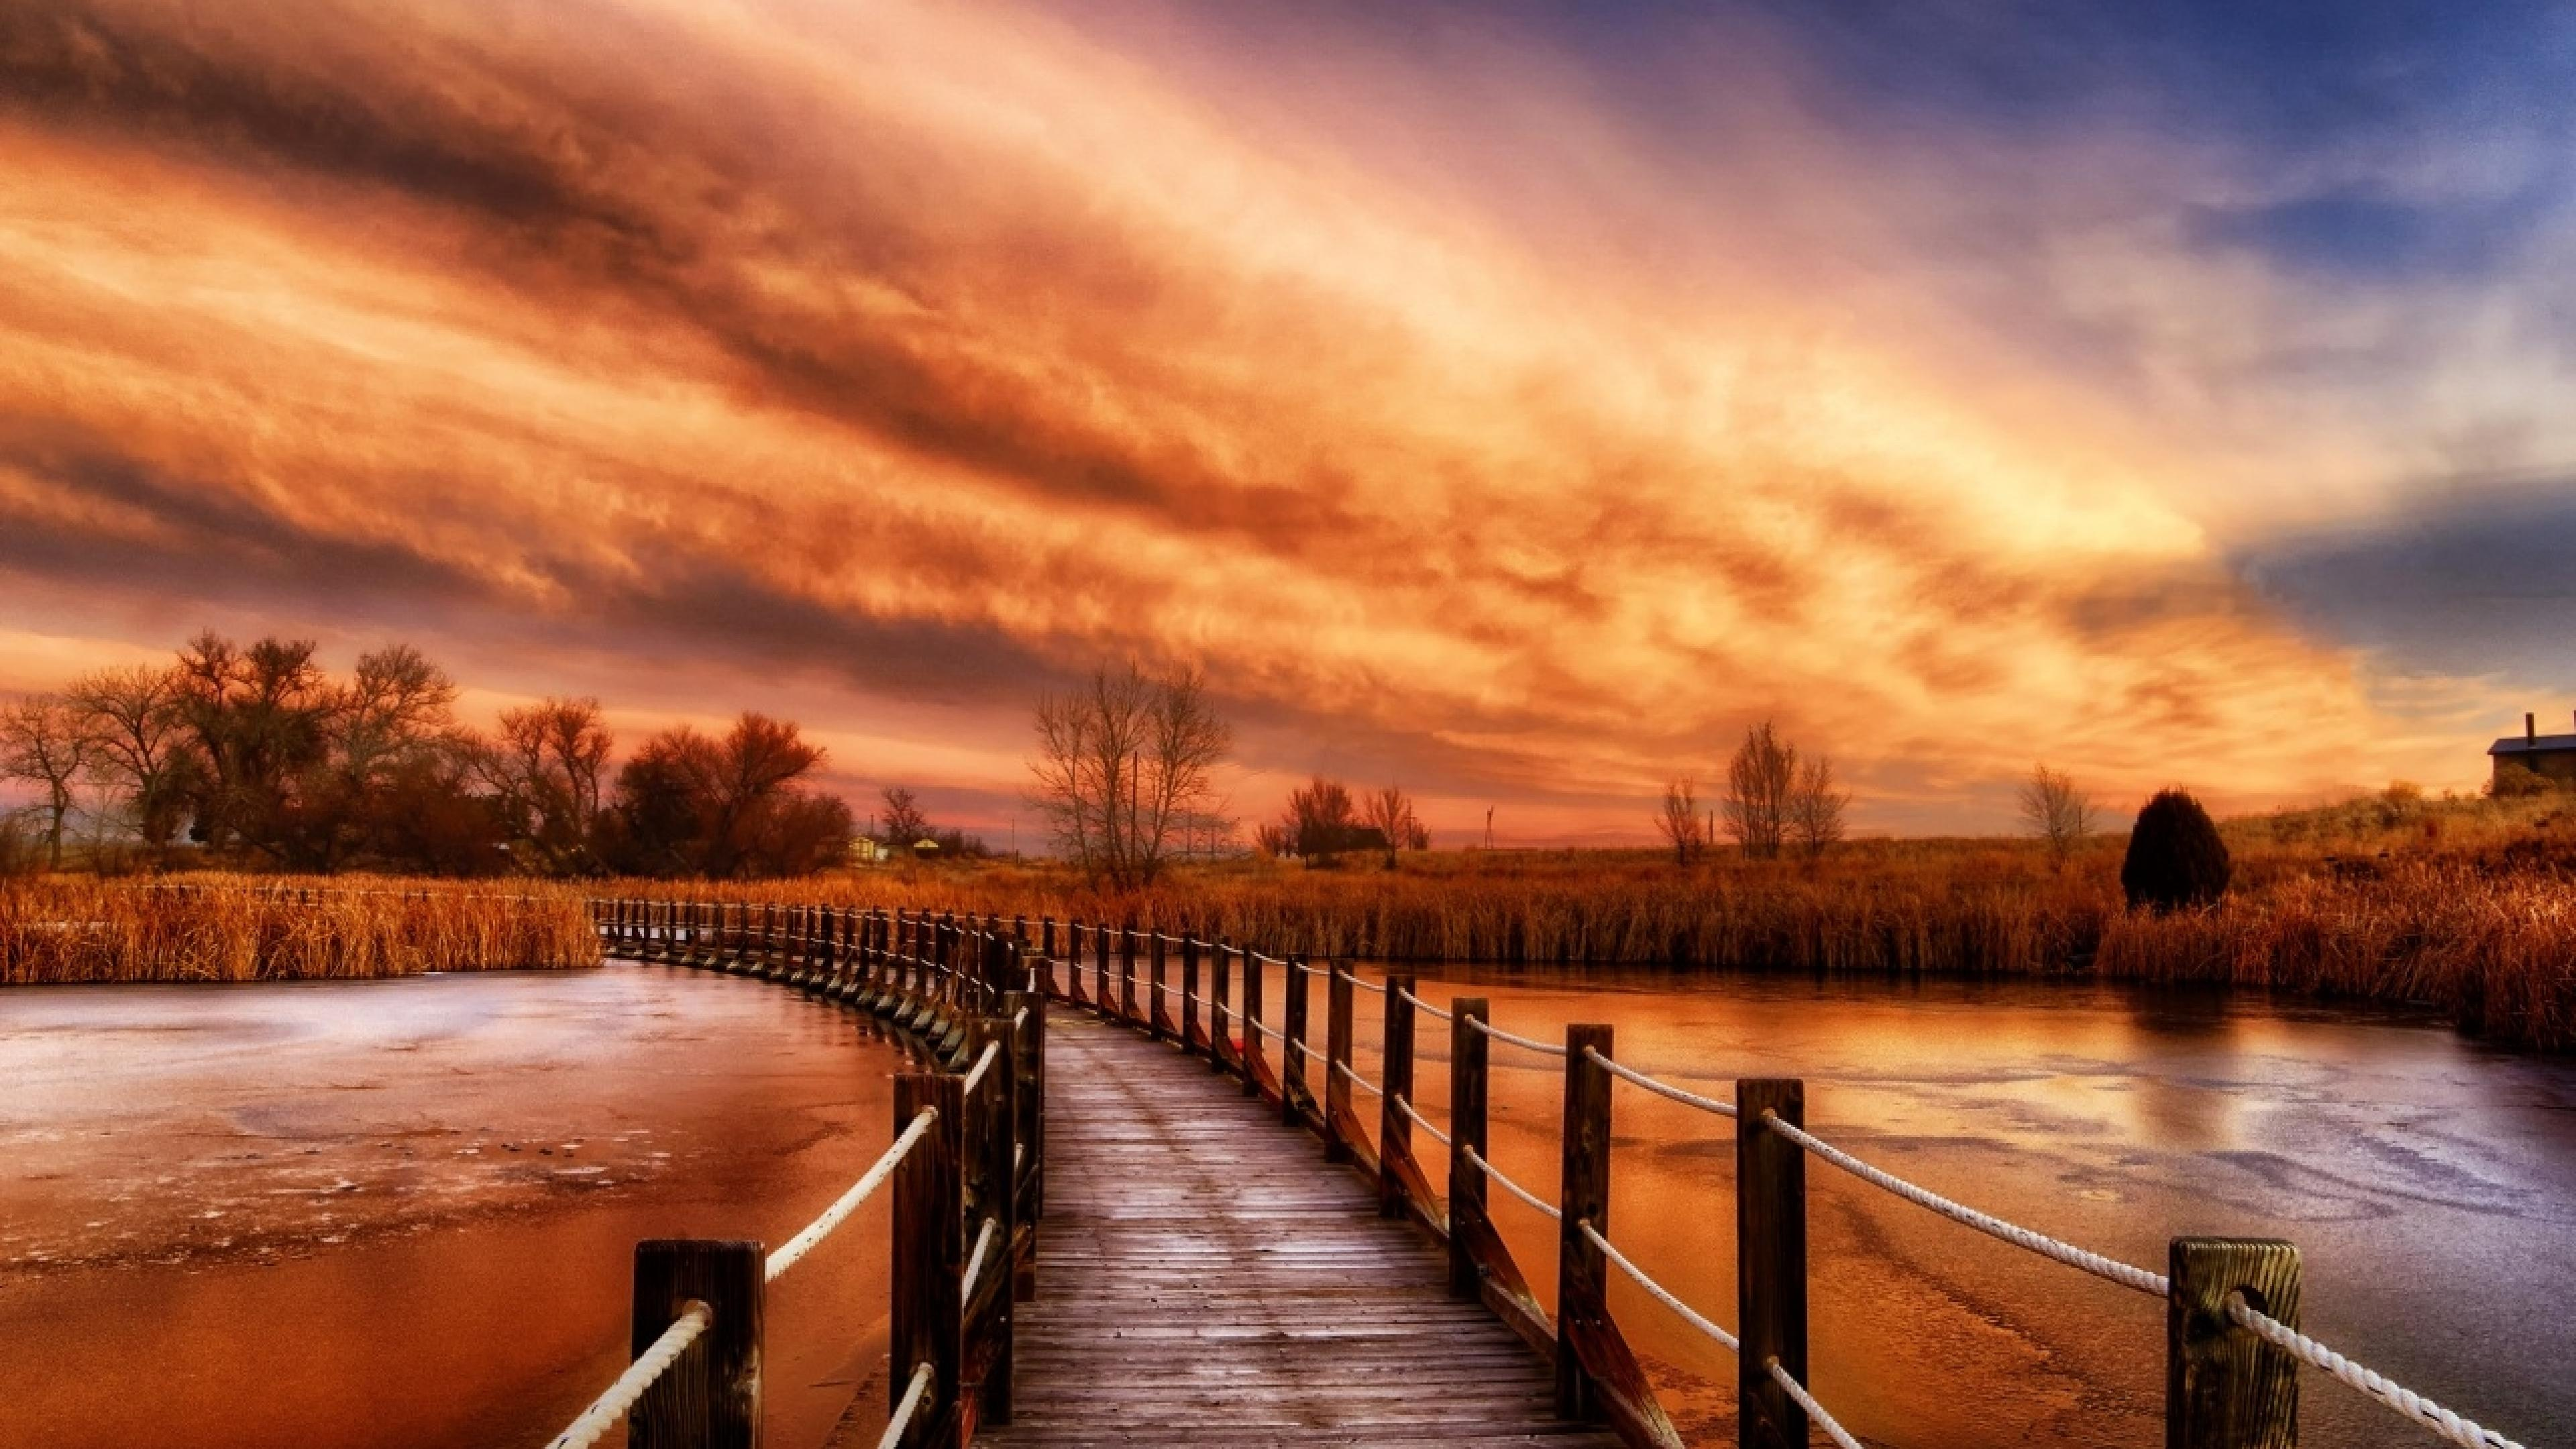 Fall Autumn Hd Wallpaper 1920x1080 Autumn River Sky Wooden Bridge Ultra Hd 3840x2160